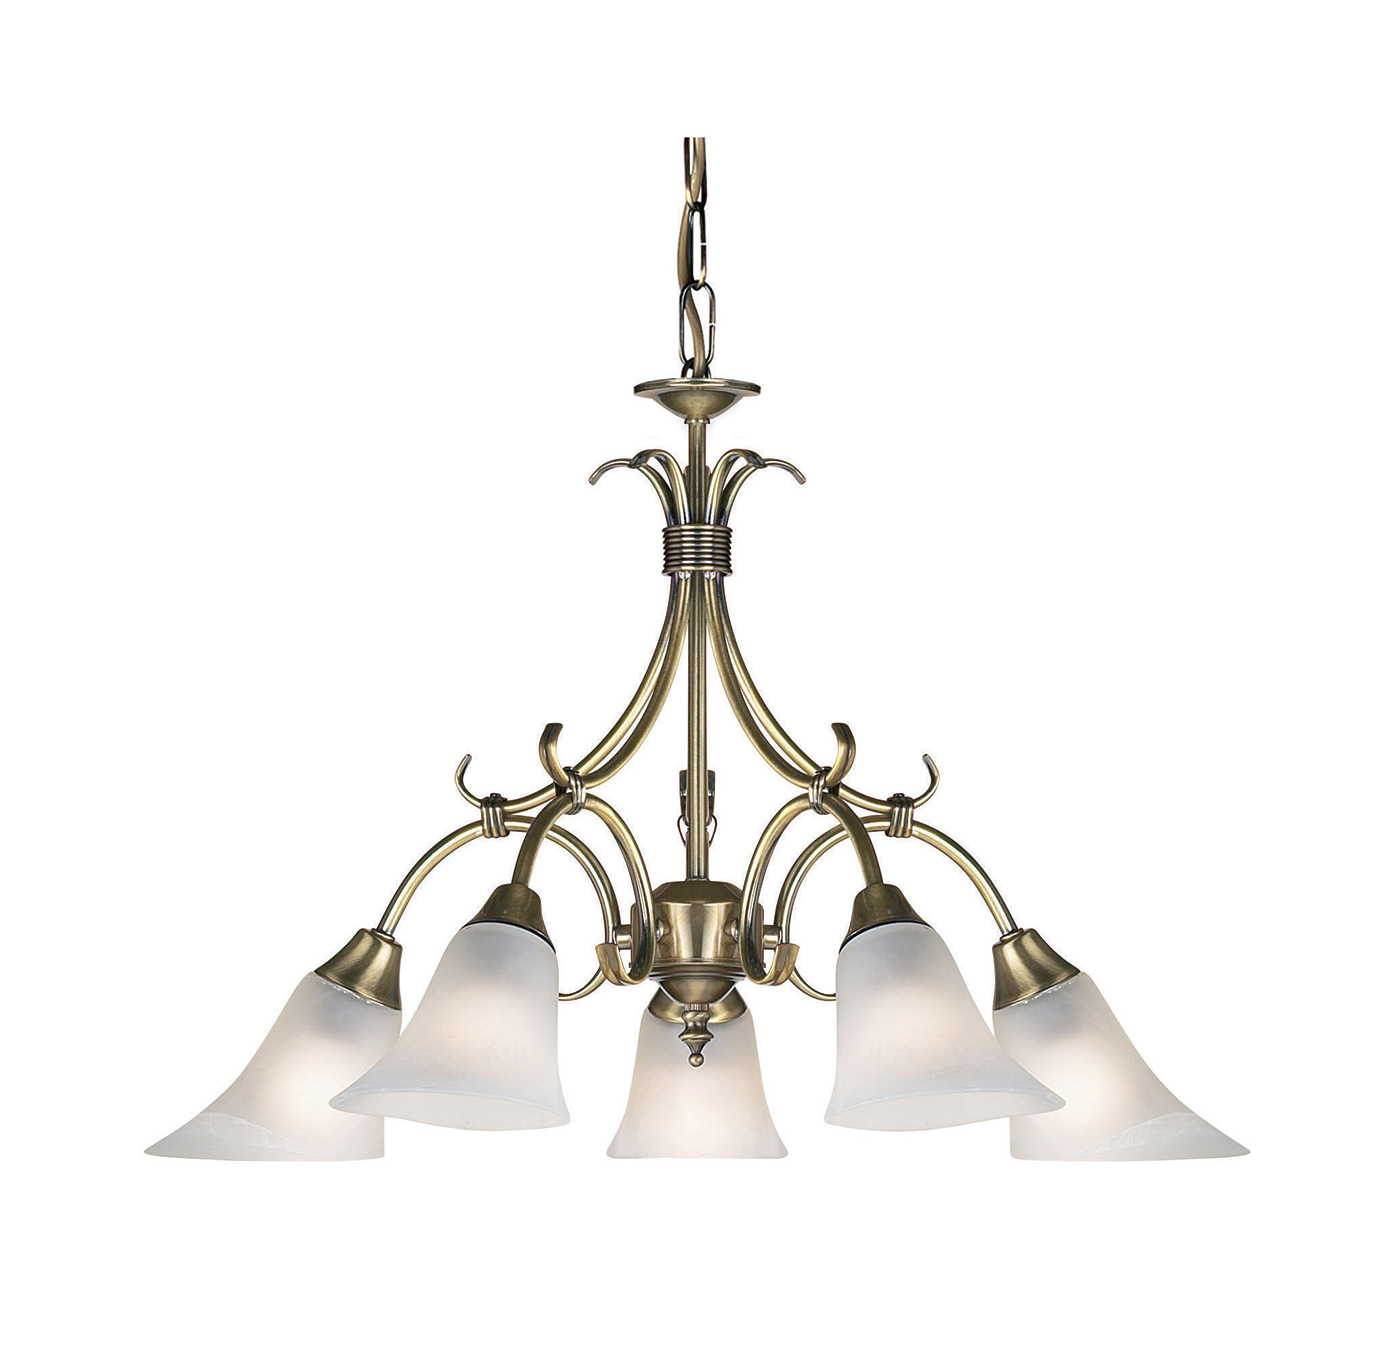 Endon Hardwick pendant 5x 40W Antique brass effect plate & frosted glass